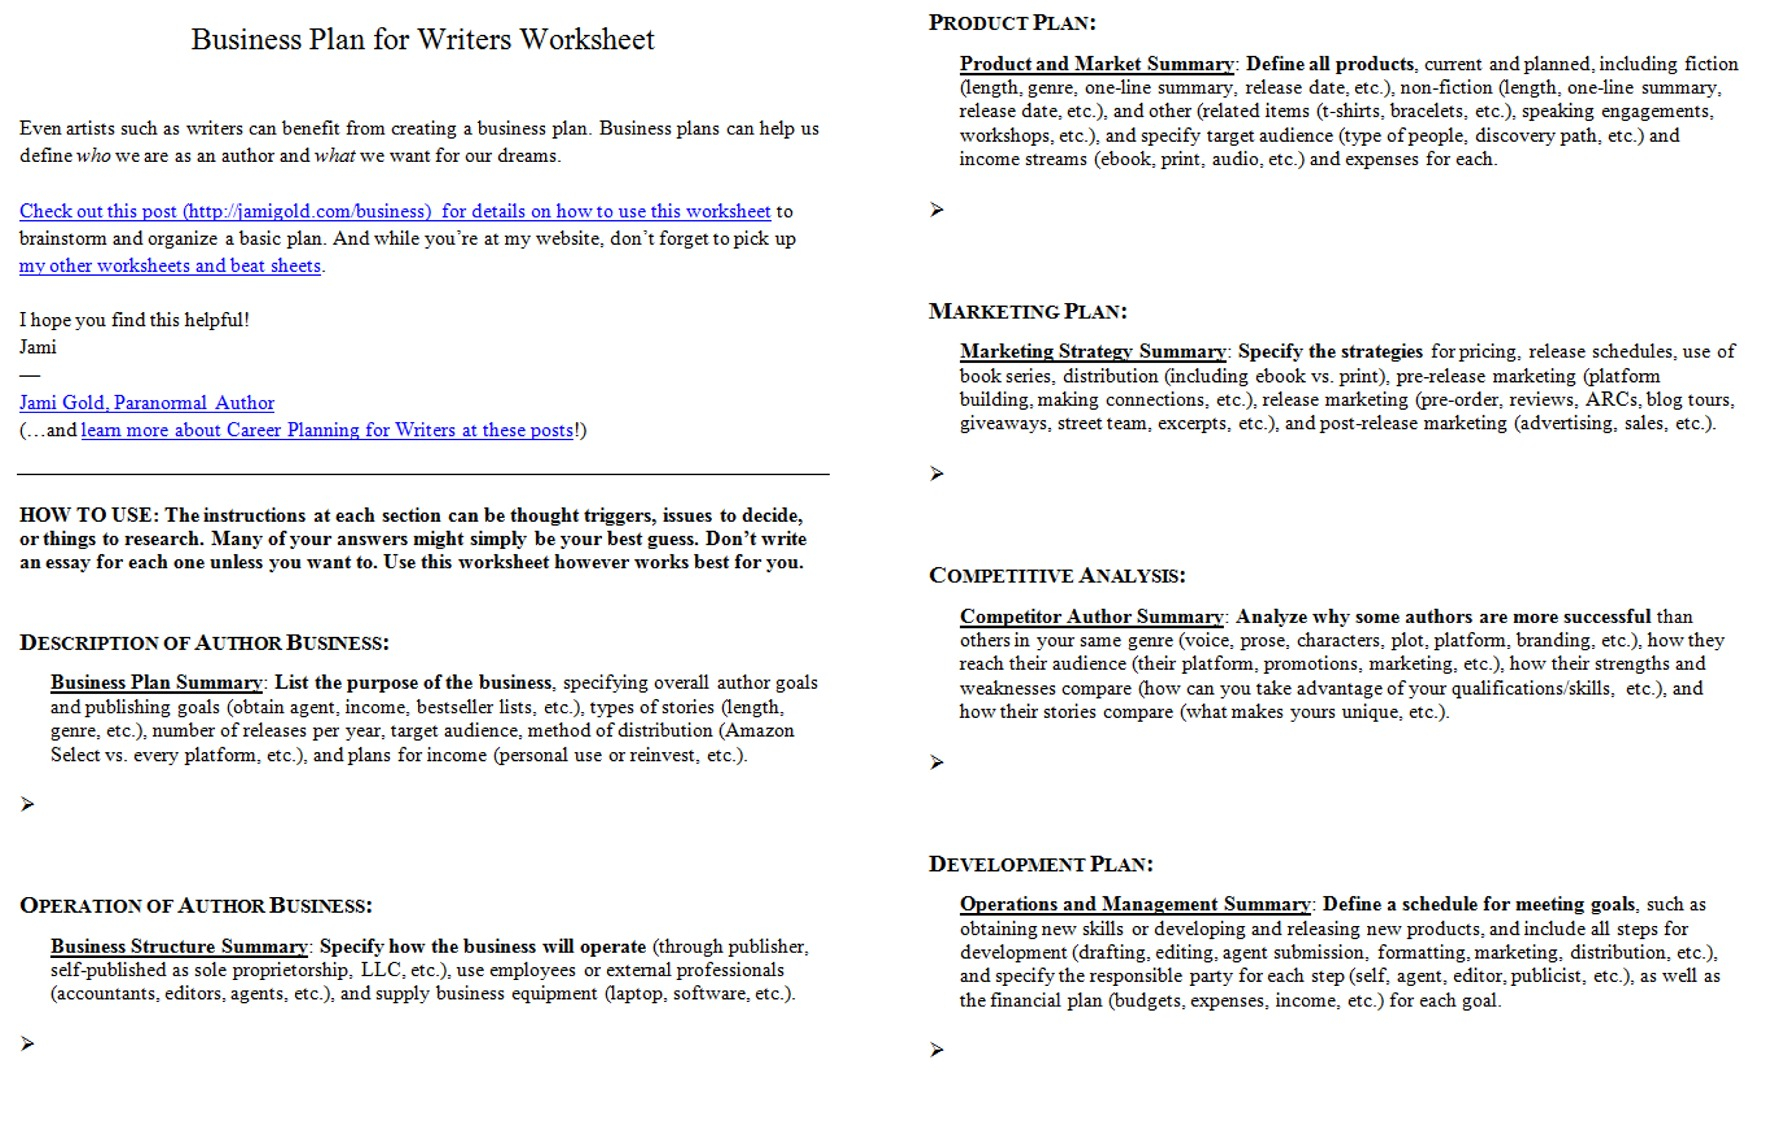 Weirdmailus  Pretty Worksheets For Writers  Jami Gold Paranormal Author With Fair Screen Shot Of Both Pages Of The Business Plan For Writers Worksheet With Easy On The Eye Math Worksheets Multiplying Decimals Also Letter Q Worksheets For Kindergarten In Addition China Map Worksheet And Algebra  Graphing Linear Equations Worksheet As Well As Writing Numbers  Worksheet Additionally William Shakespeare Worksheets From Jamigoldcom With Weirdmailus  Fair Worksheets For Writers  Jami Gold Paranormal Author With Easy On The Eye Screen Shot Of Both Pages Of The Business Plan For Writers Worksheet And Pretty Math Worksheets Multiplying Decimals Also Letter Q Worksheets For Kindergarten In Addition China Map Worksheet From Jamigoldcom